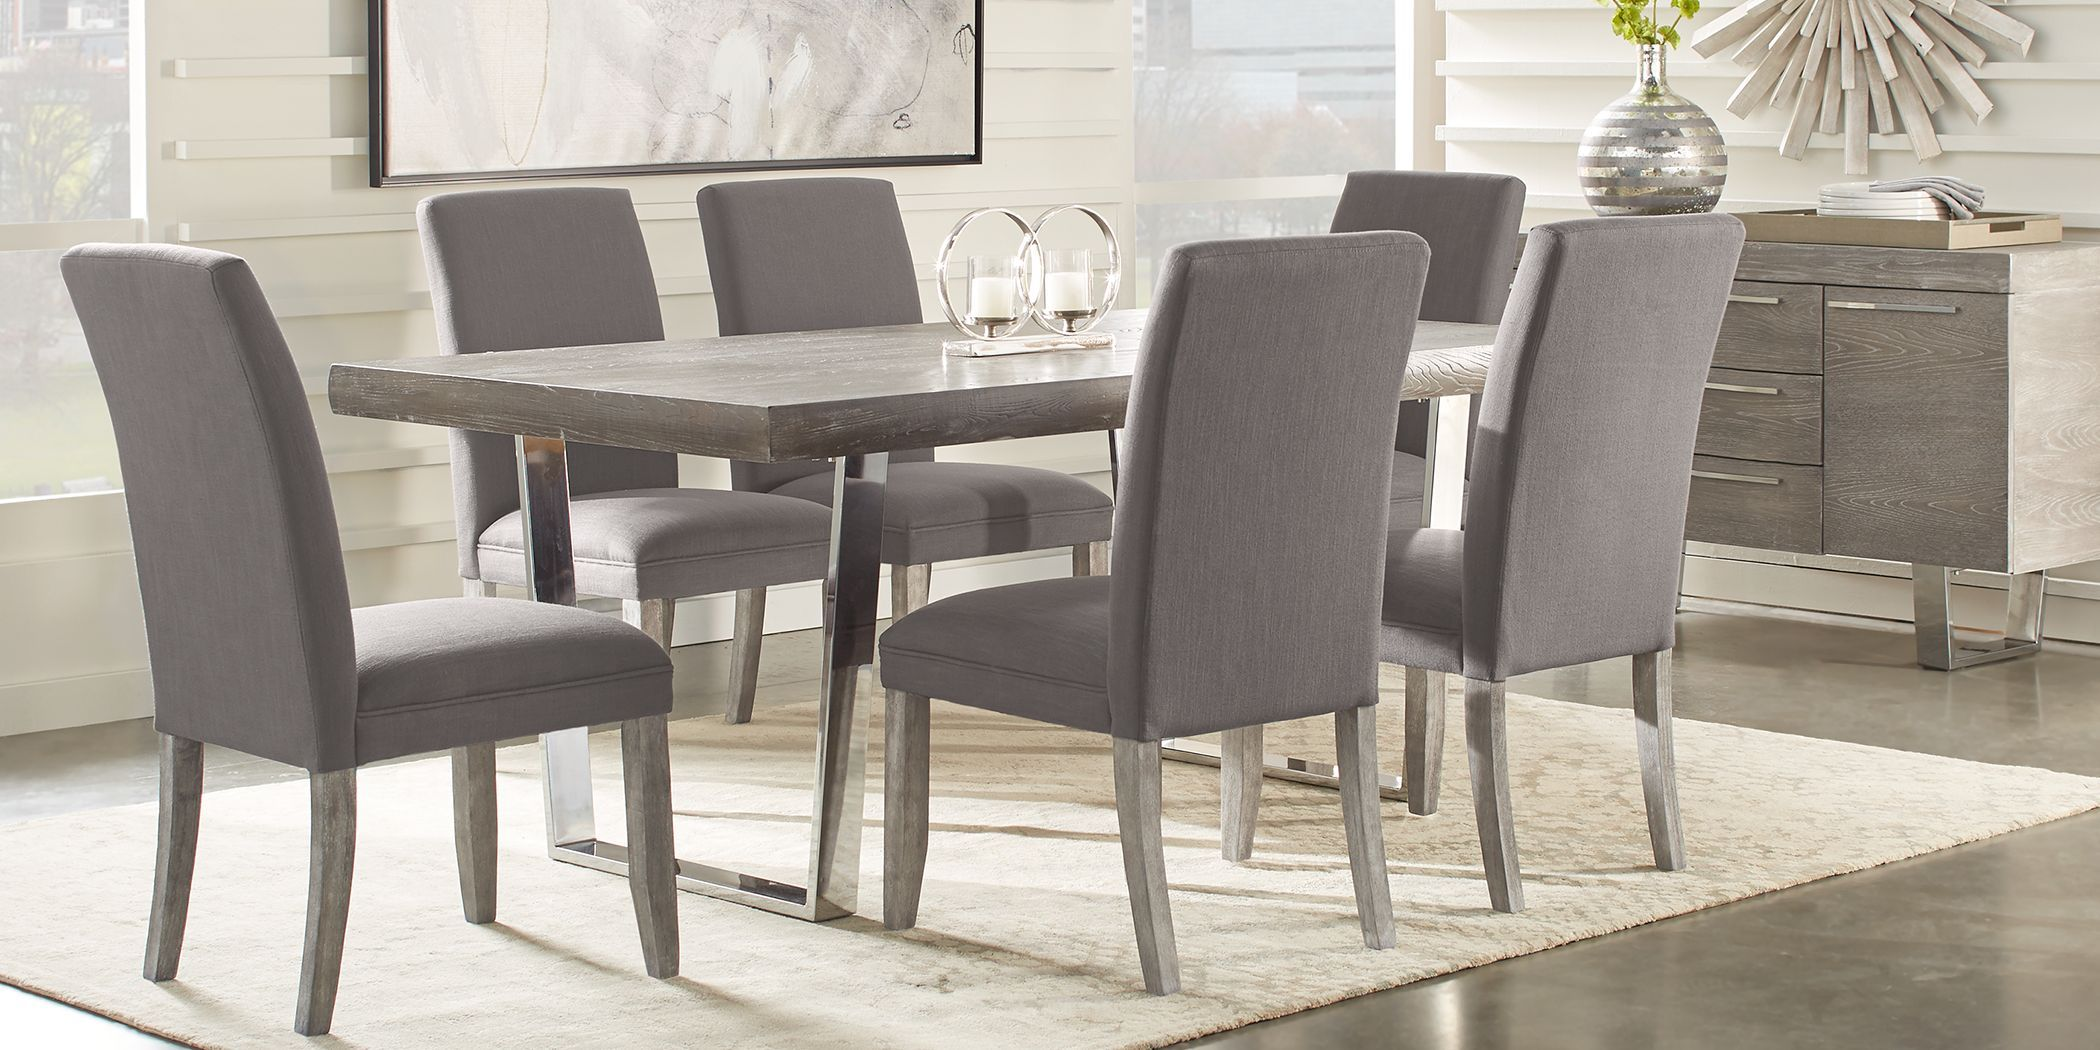 Cindy Crawford Home San Francisco Gray 5 Pc Dining Room With Charcoal Chairs In 2021 Dining Room Sets Grey Dining Tables Affordable Dining Room Sets Rooms to go dining room tables